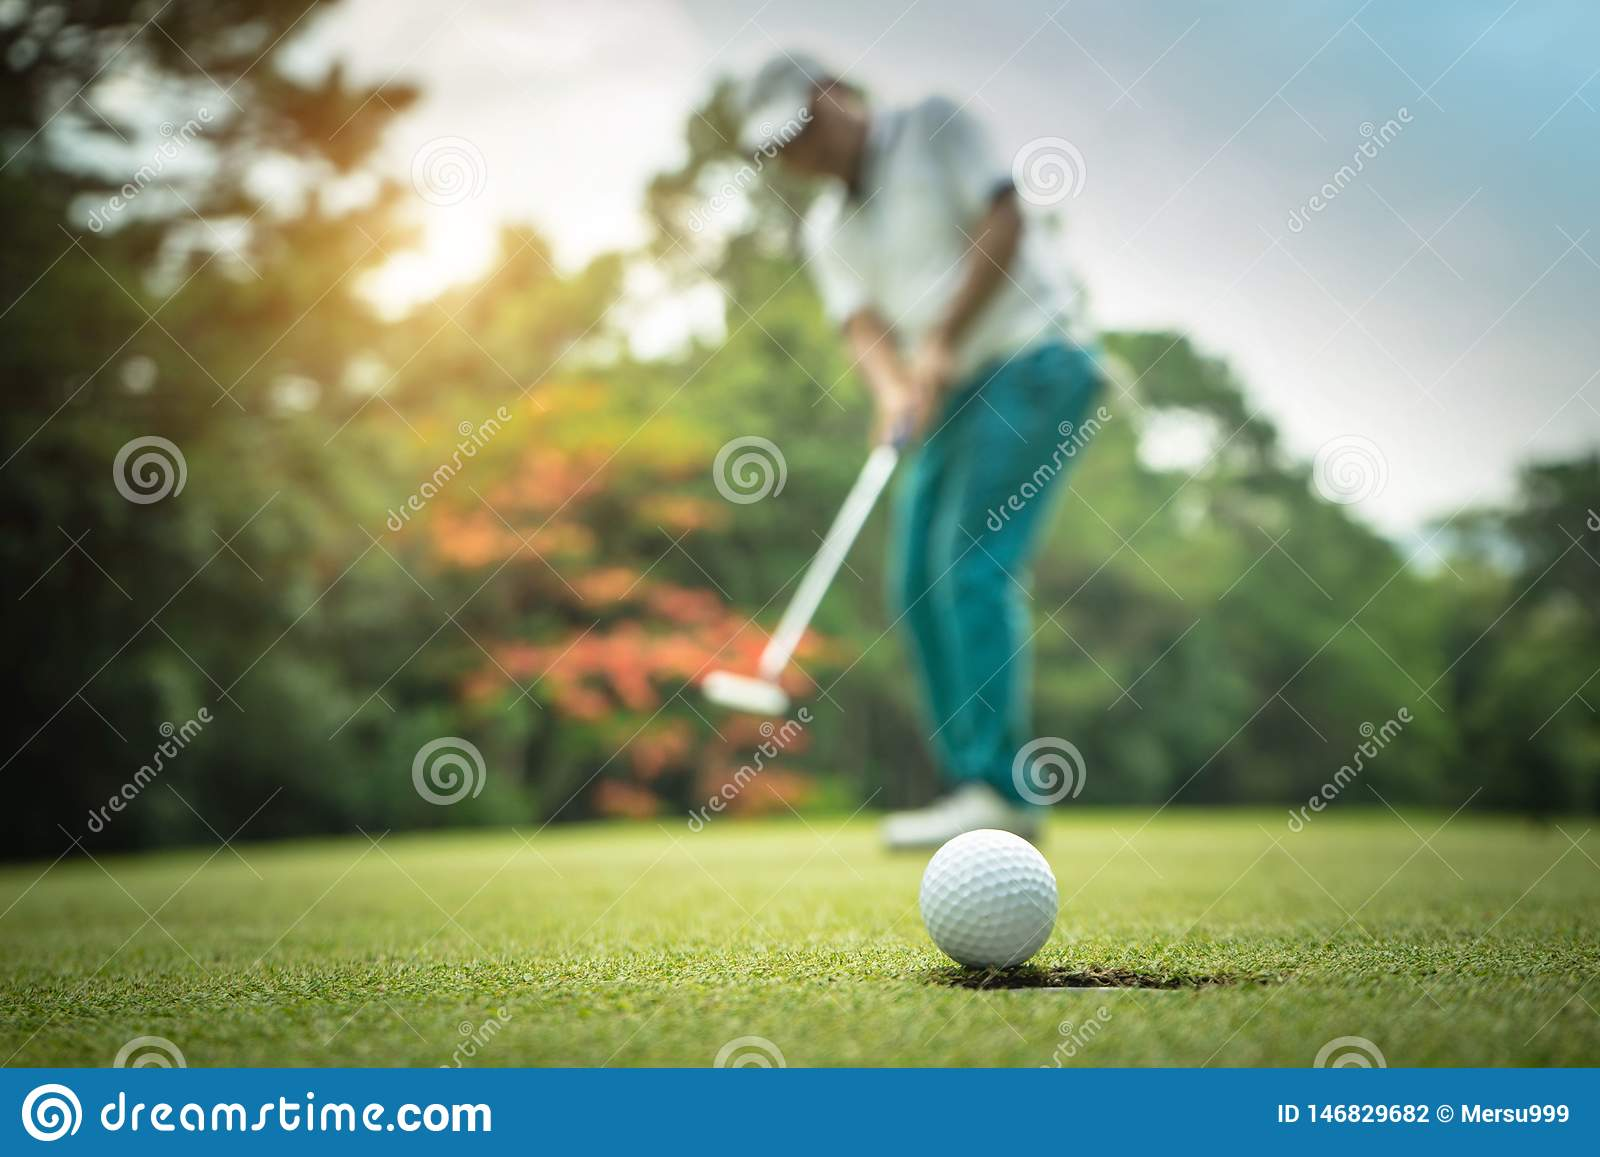 Golfer action to win after long putting golf ball on the green golf